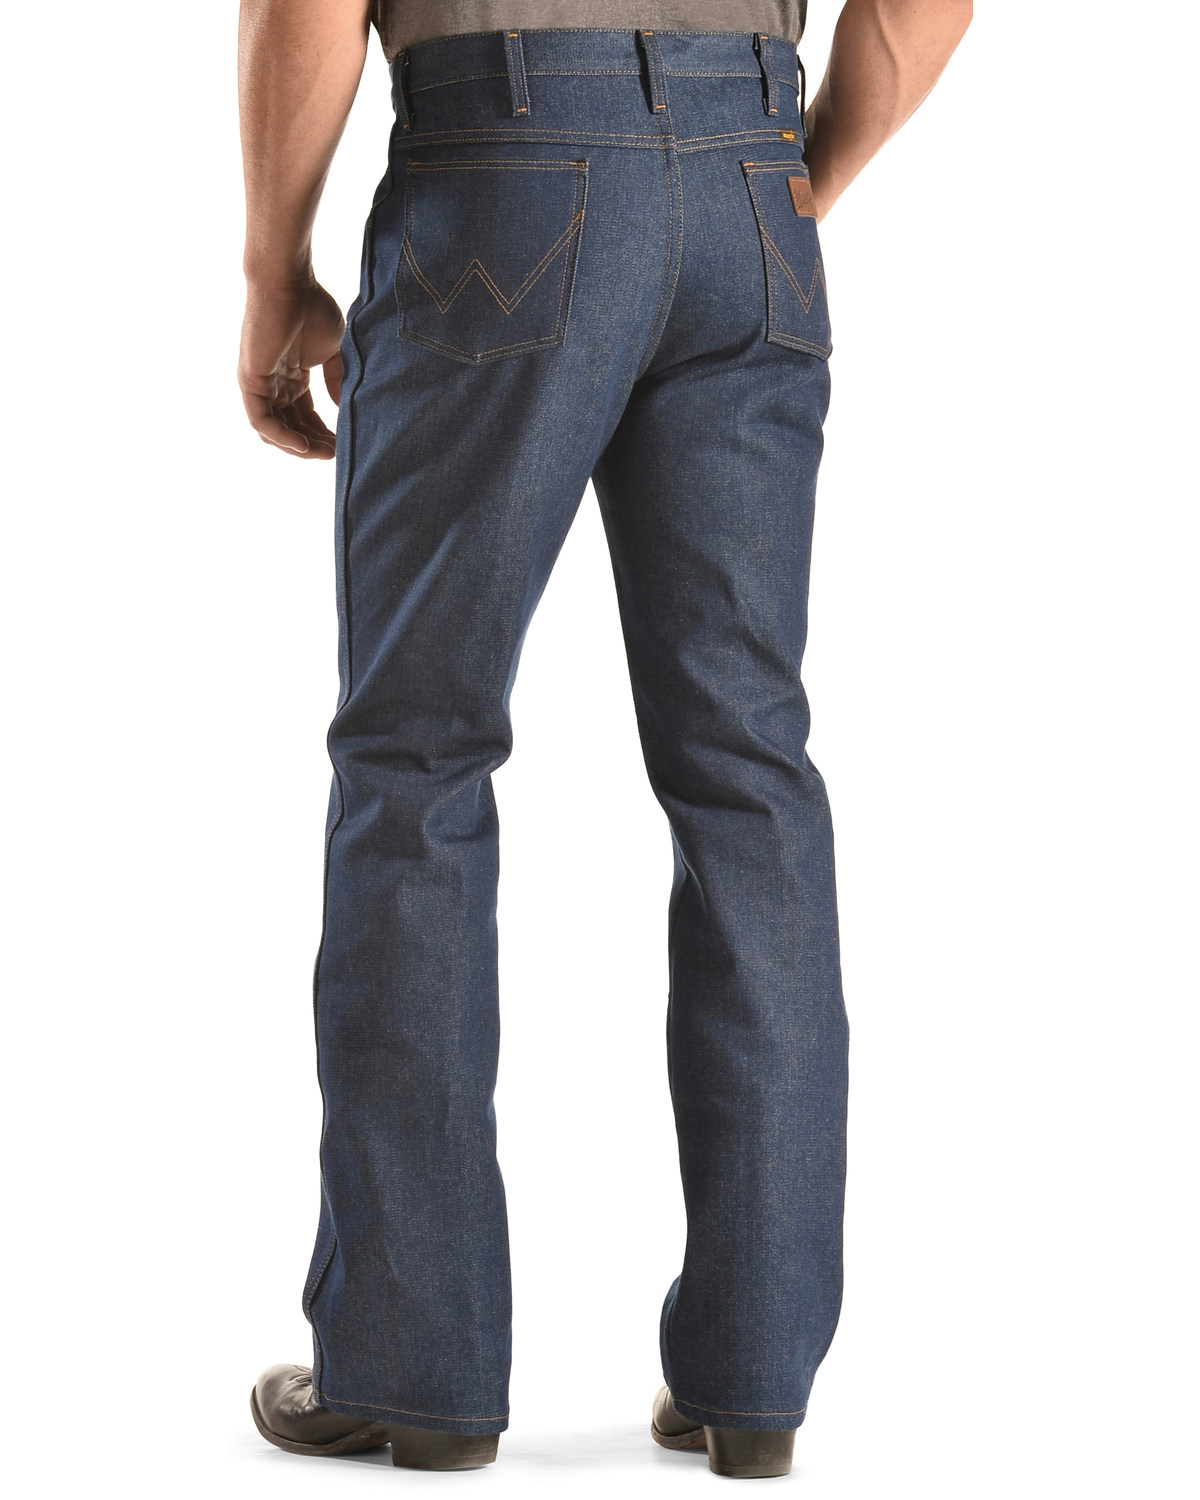 01adcd7cdd8 Zoomed Image Wrangler Men's Slim Fit Traditional Boot Cut Jeans, Indigo, ...